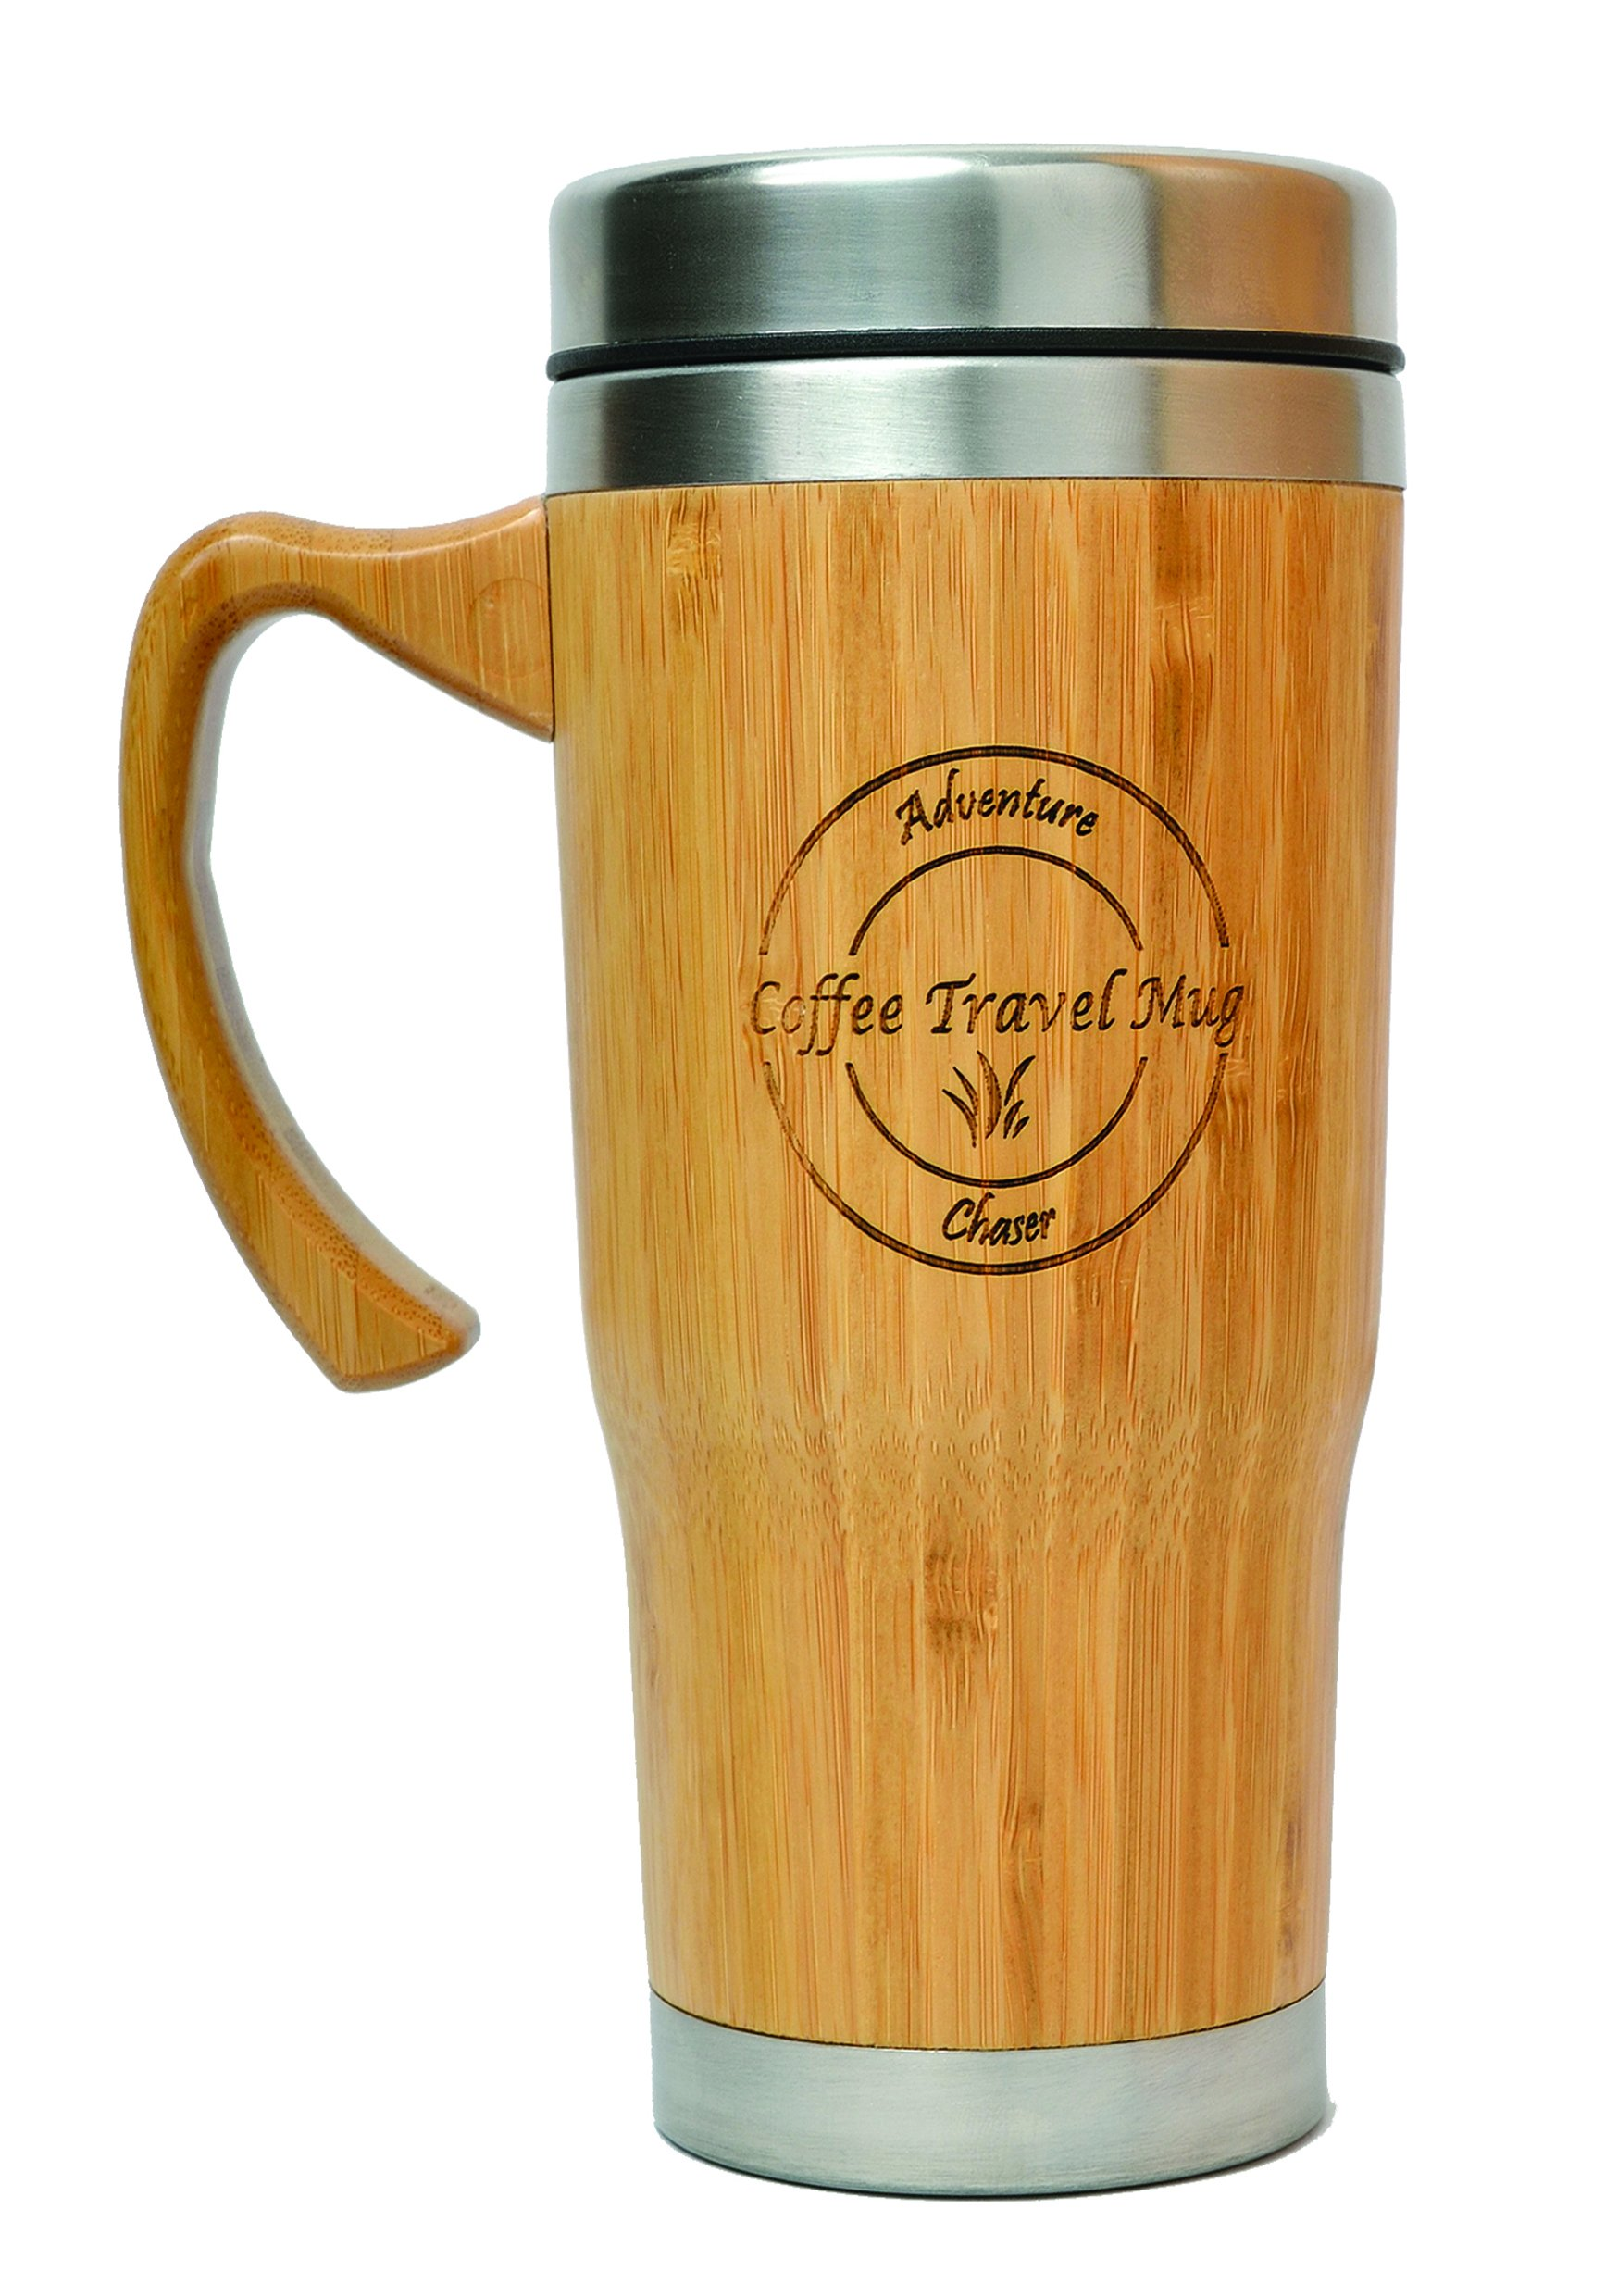 AdventureChaser Bamboo Travel Mug for Coffee and Tea | Premium Insulated Thermos with Handler & QuickSeal Lid | Stainless Steel Double Walled Interior | Spill Proof & Slip Resilient base | 16 oz.